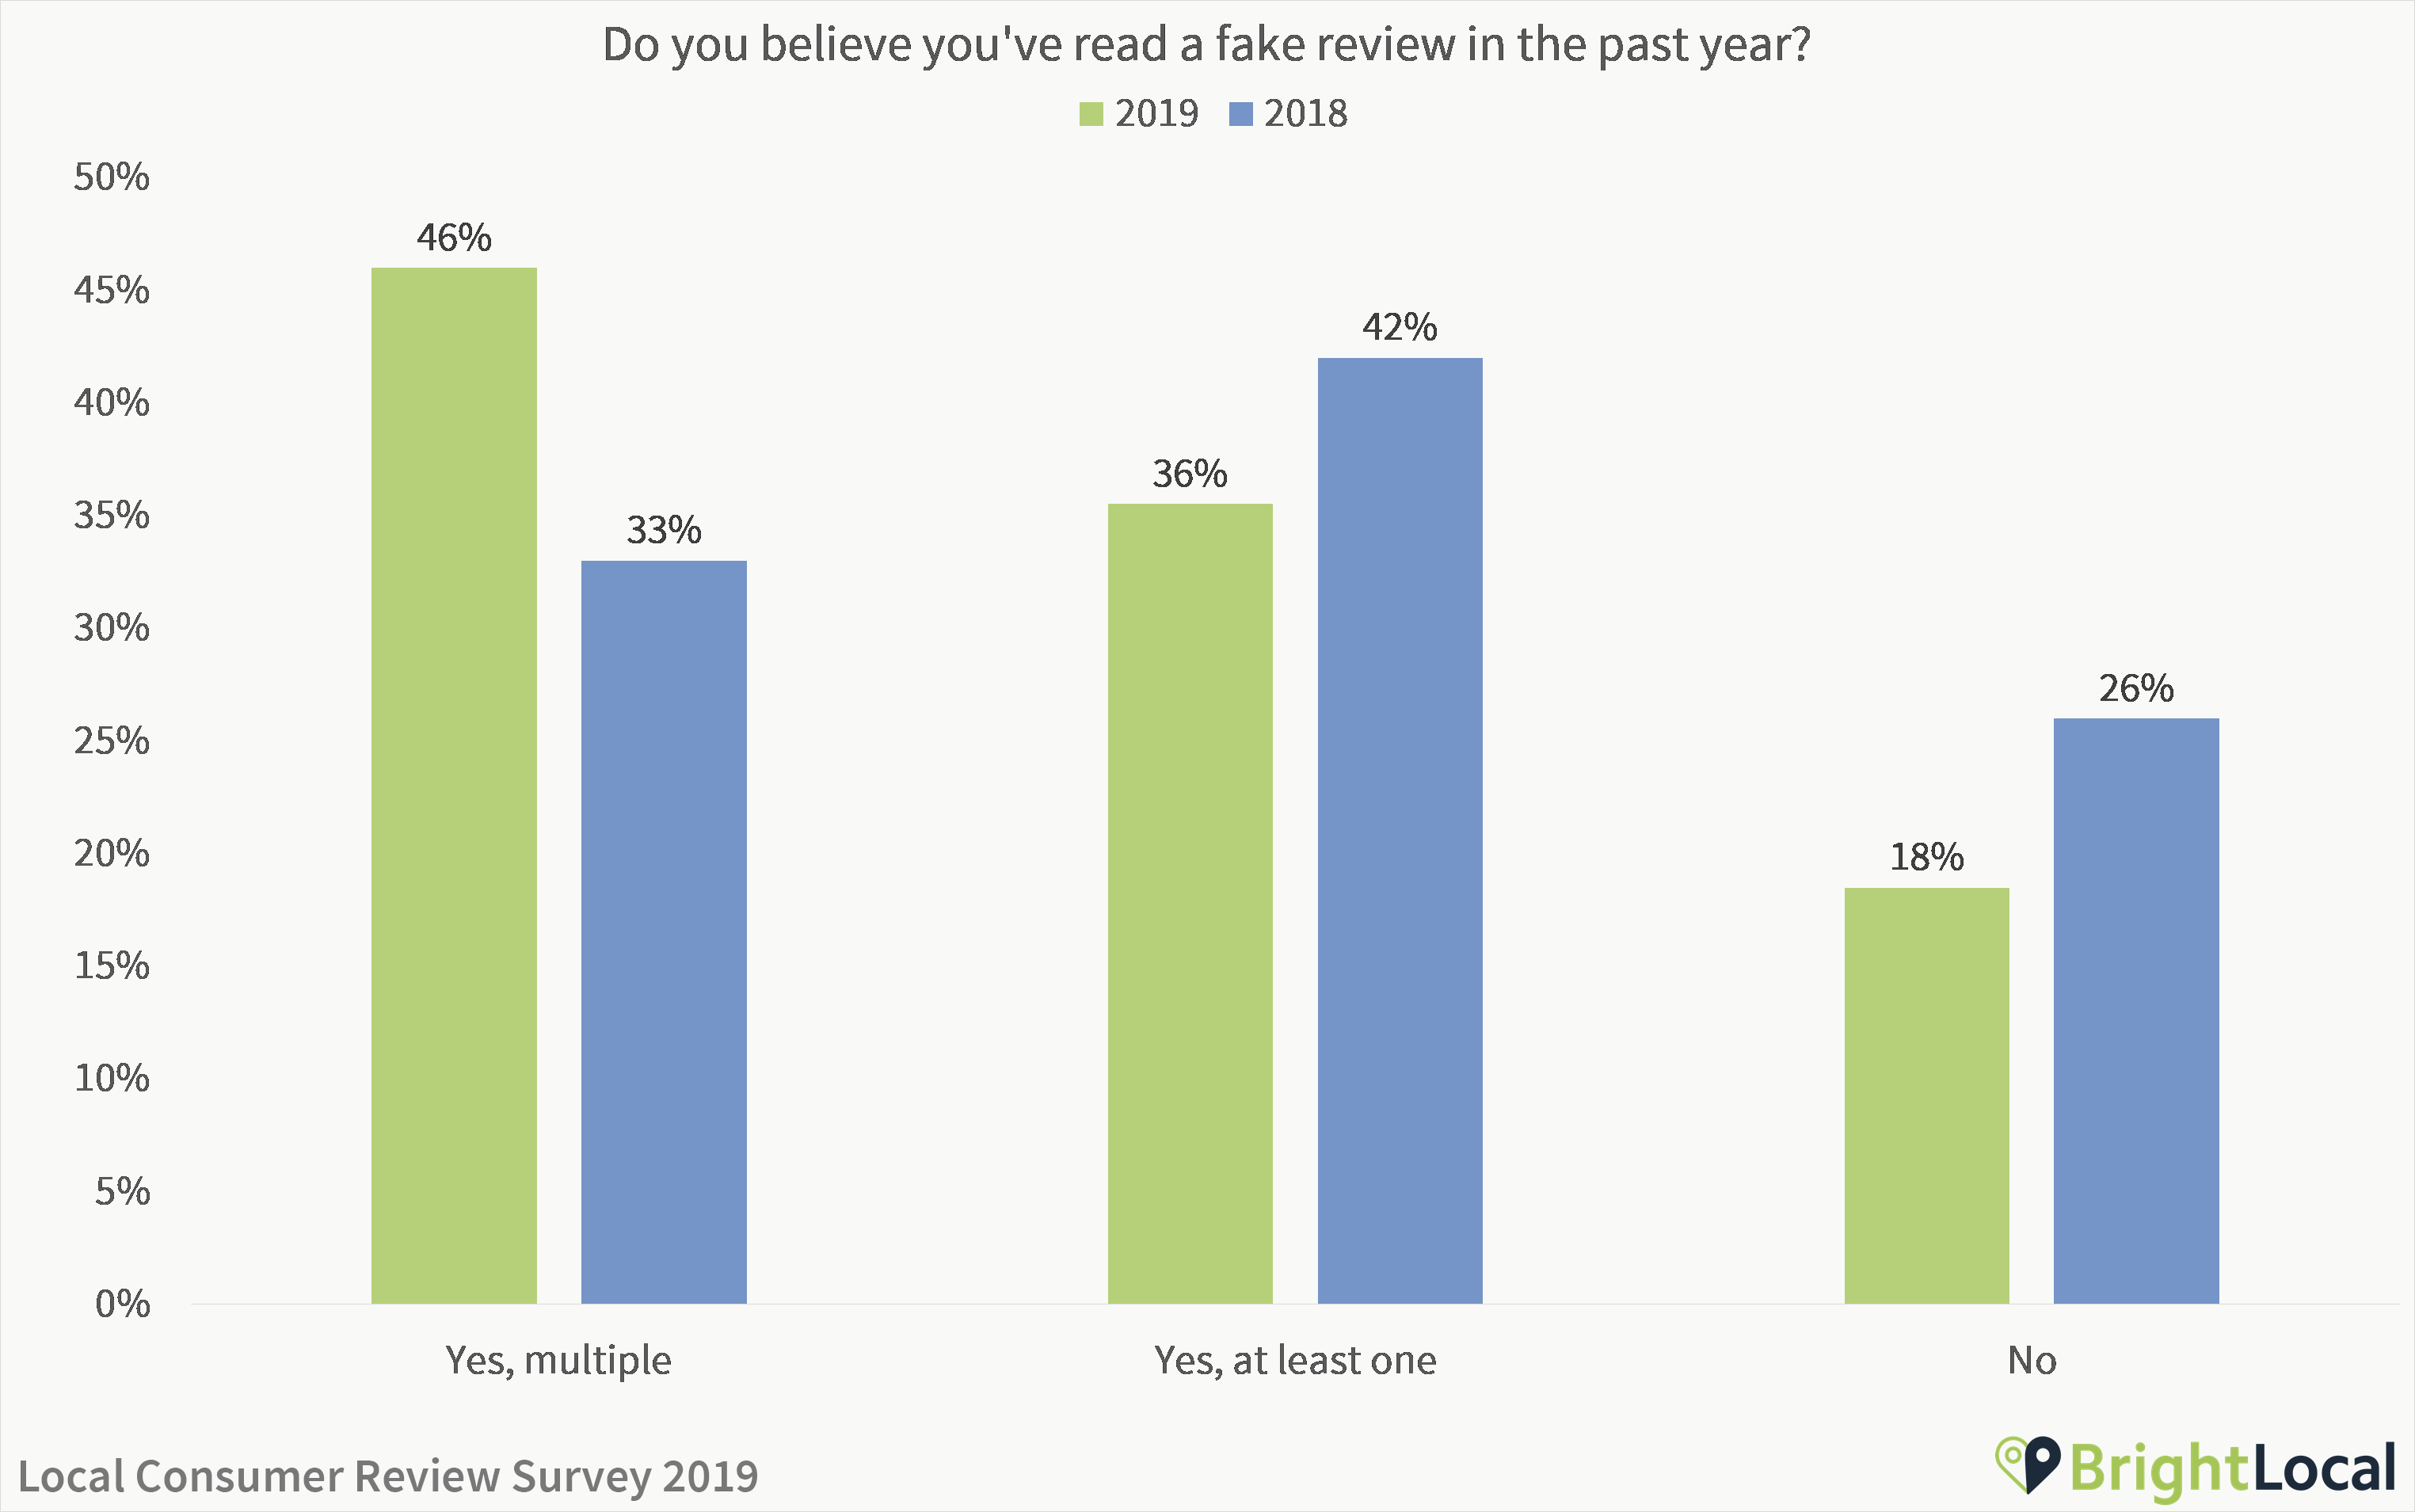 Do you believe you've read a fake review in the past year